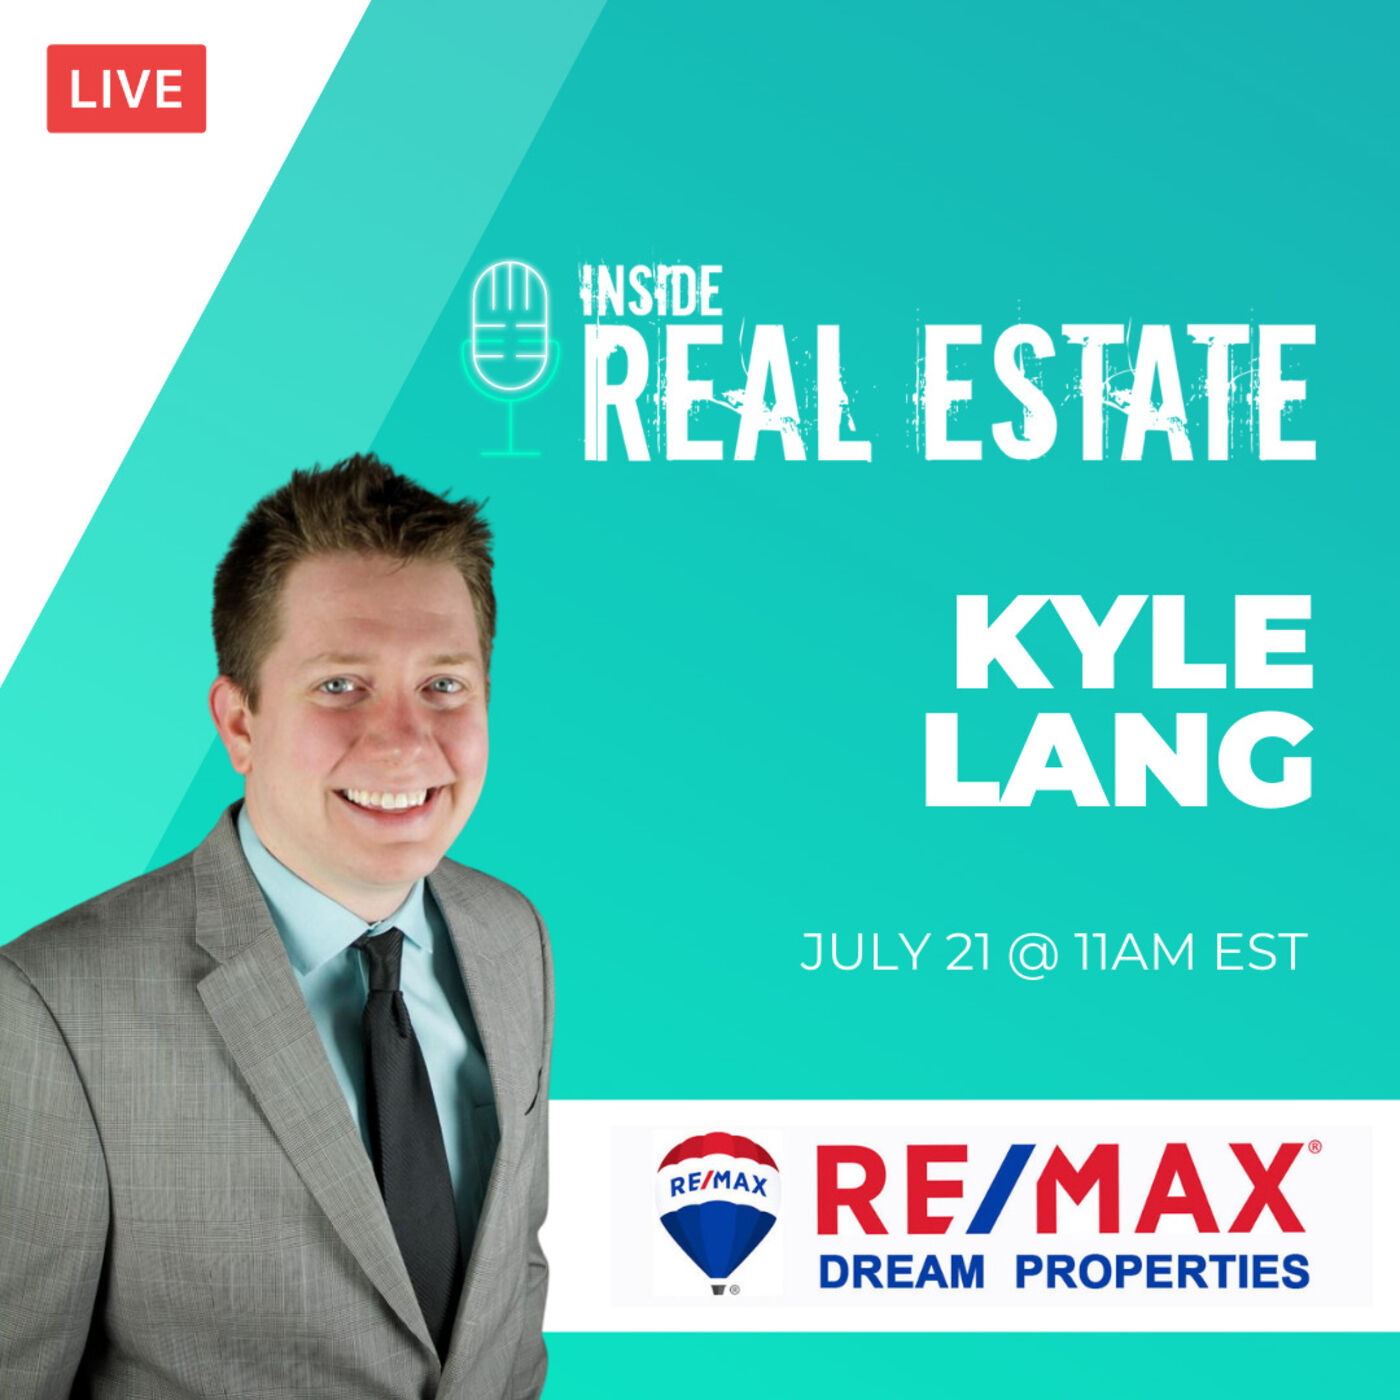 Kyle Lang, RE/MAX Dream Properties - Crisis Management, Market Strategy, and More